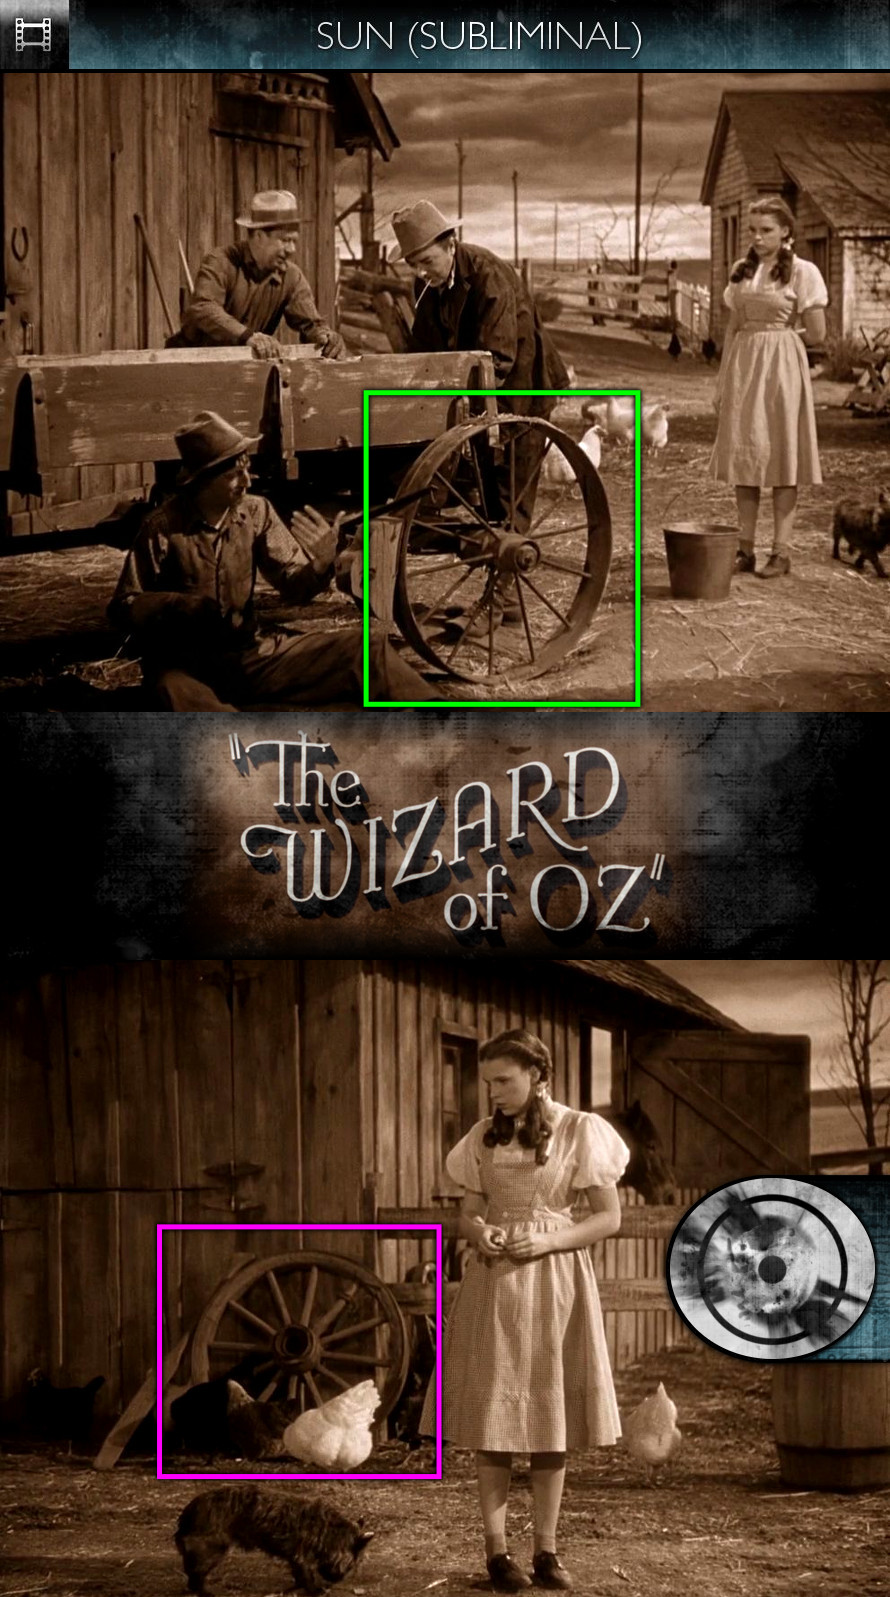 The Wizard of Oz (1939) - Sun/Solar - Subliminal